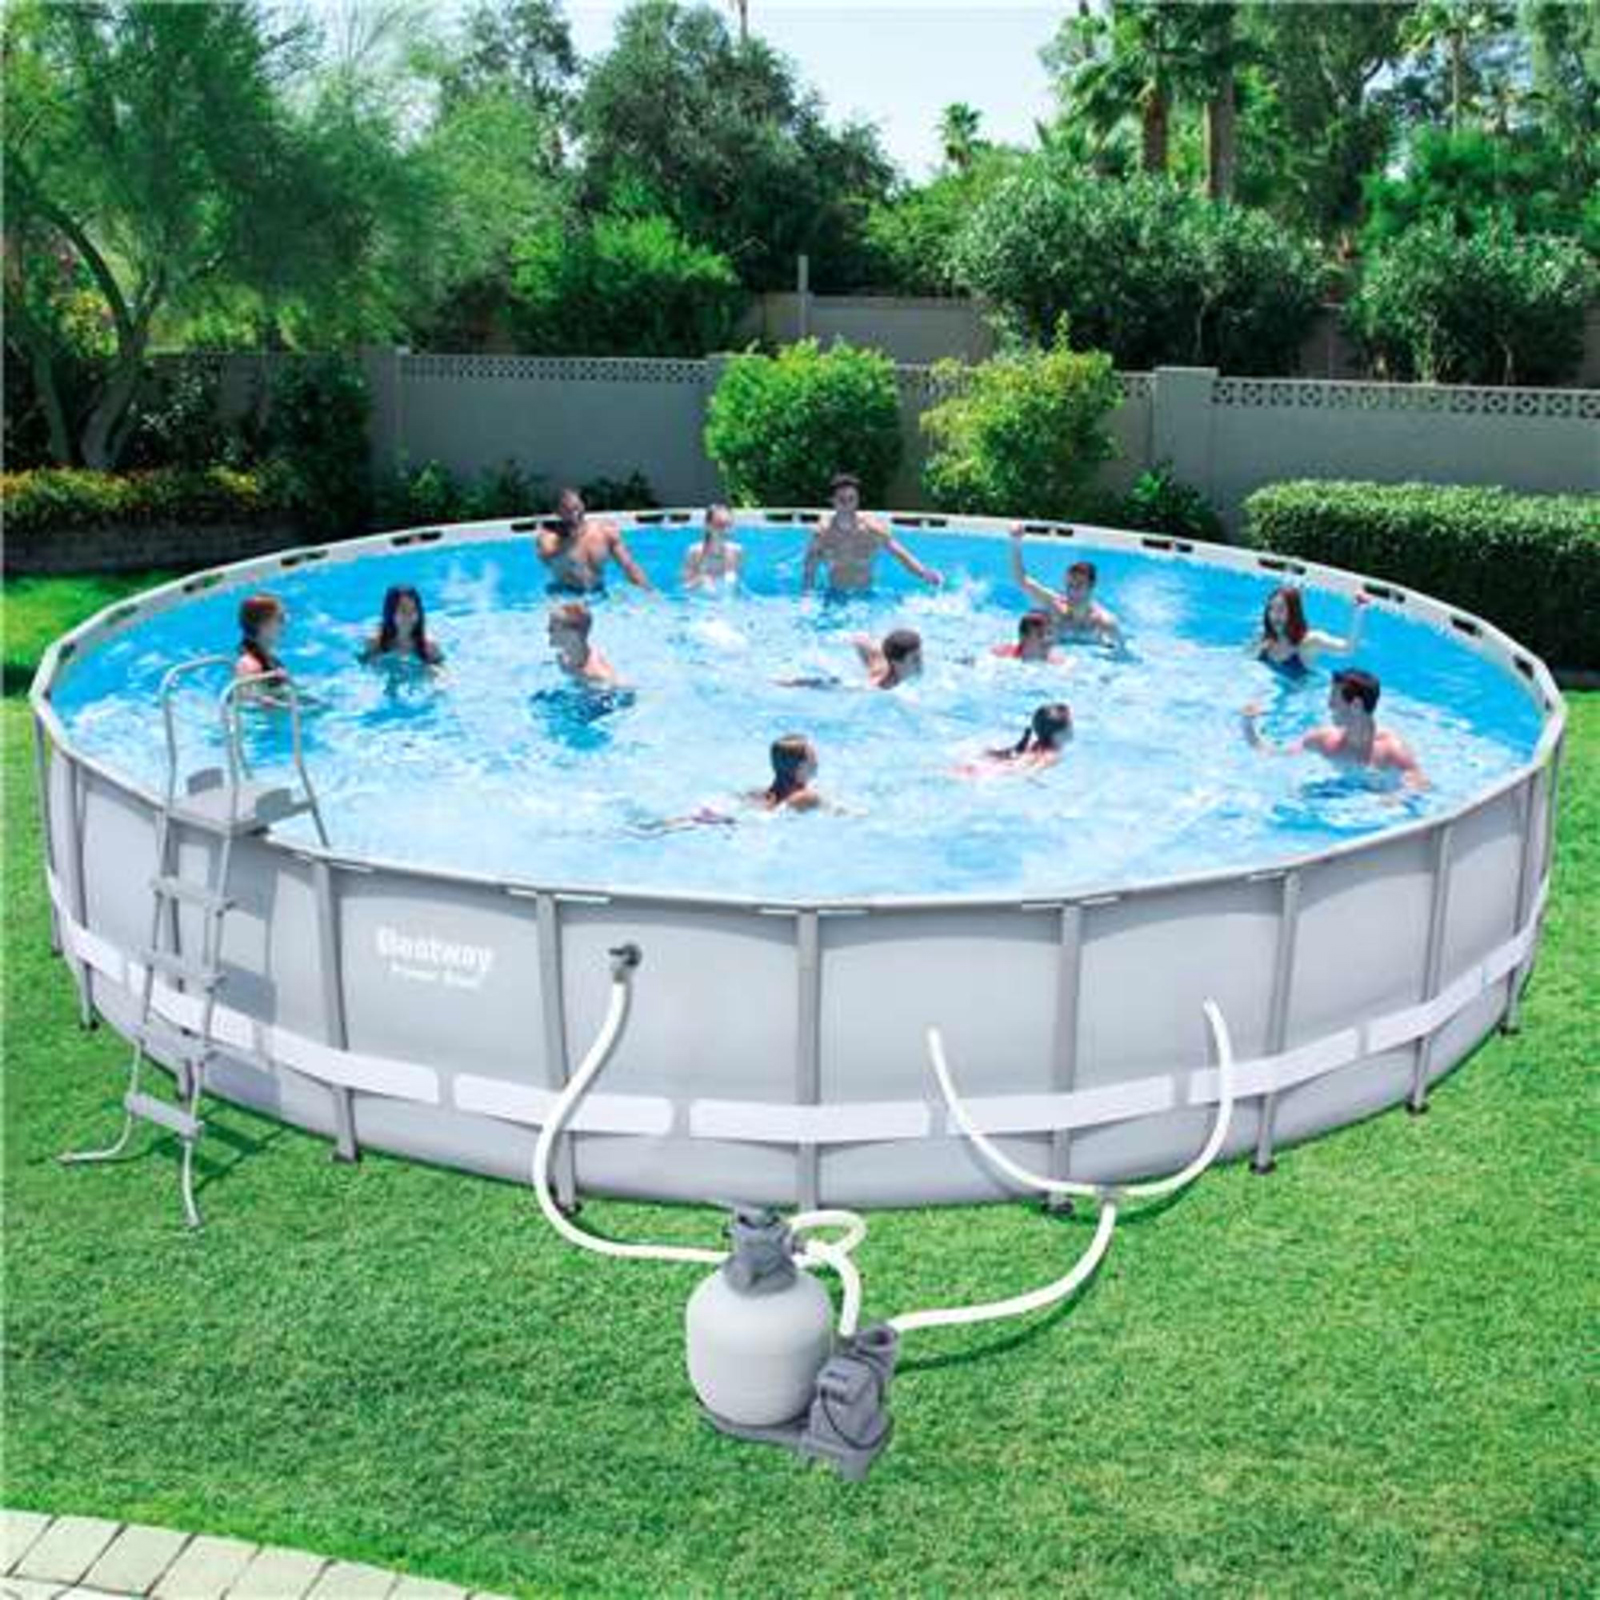 Pool Pumpe Anschließen Anleitung Bestway Bestway Steel Pro 26 39 X 52 Quot Frame Pool With Pump Sears